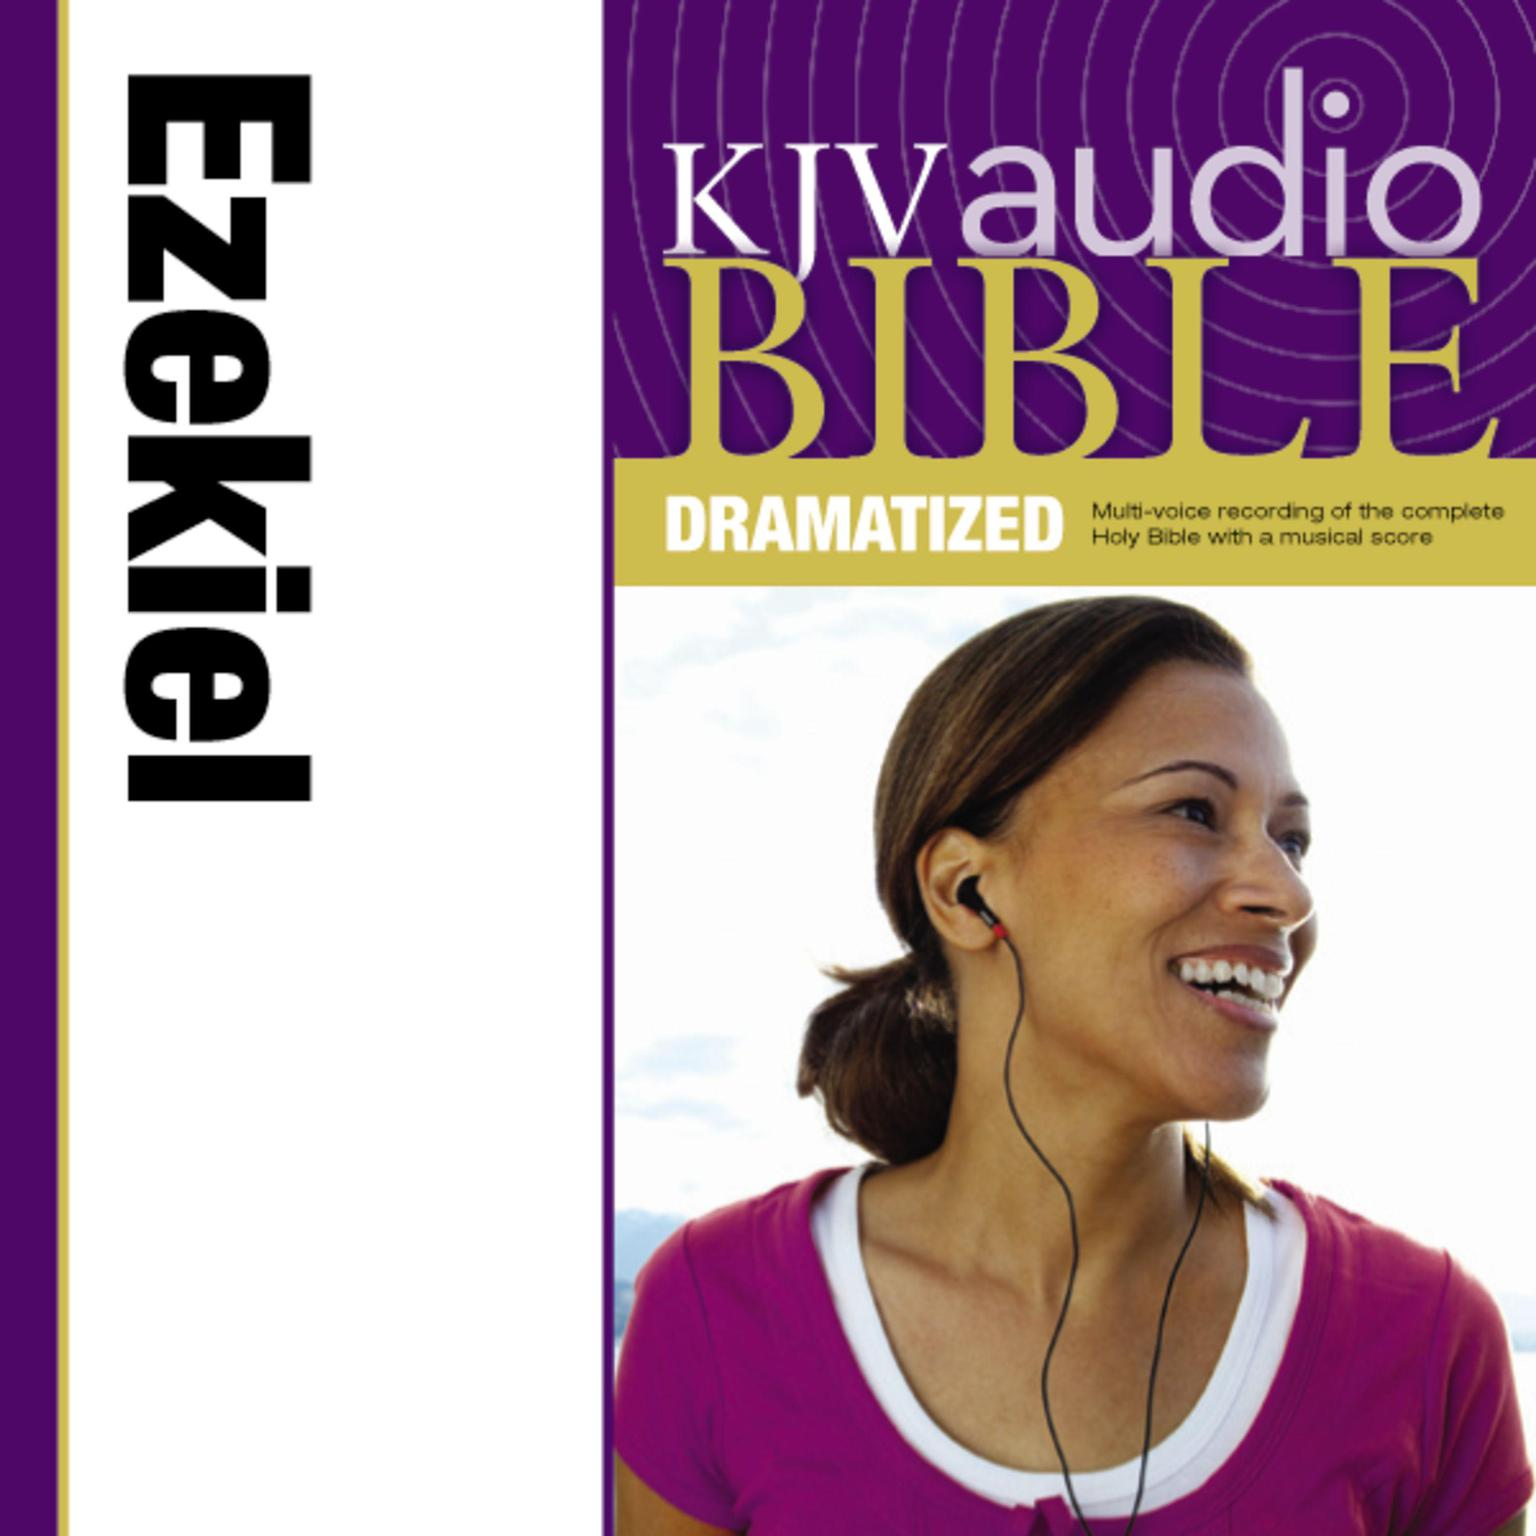 Printable KJV, Audio Bible, Dramatized: Ezekiel, Audio Download Audiobook Cover Art